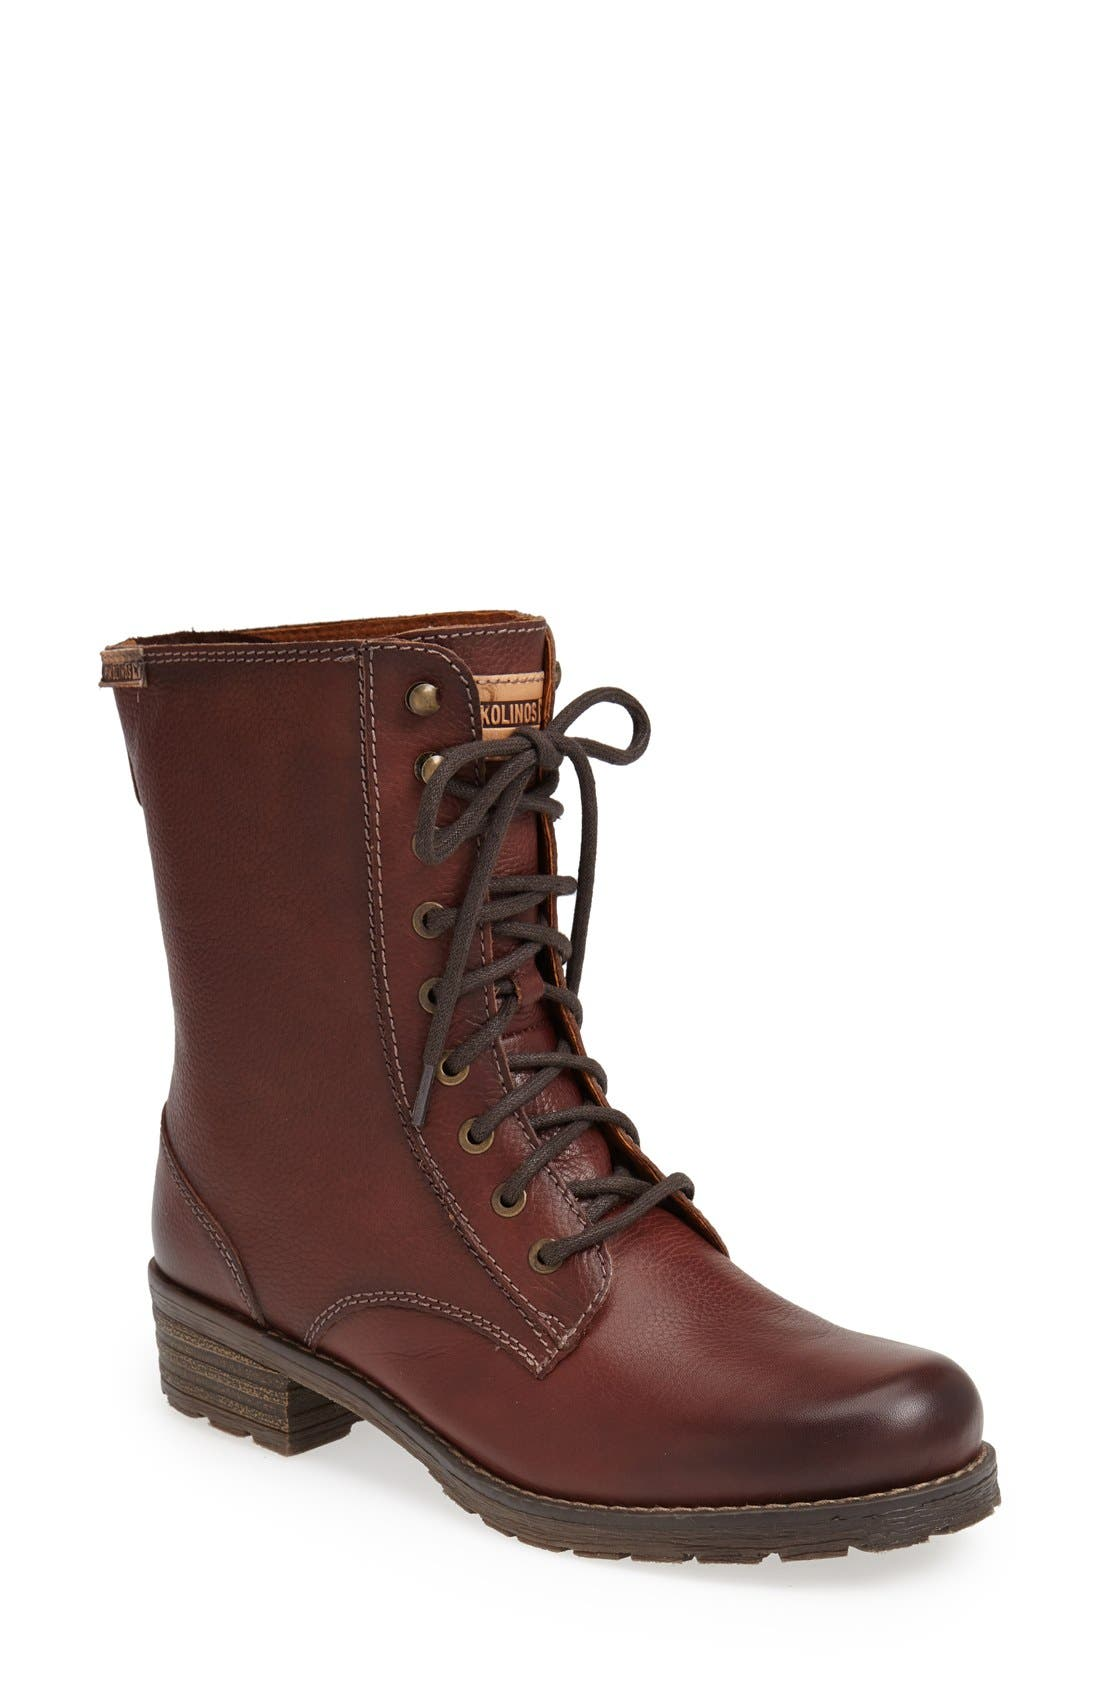 Alternate Image 1 Selected - PIKOLINOS 'Monza' Lace-Up Boot (Women)